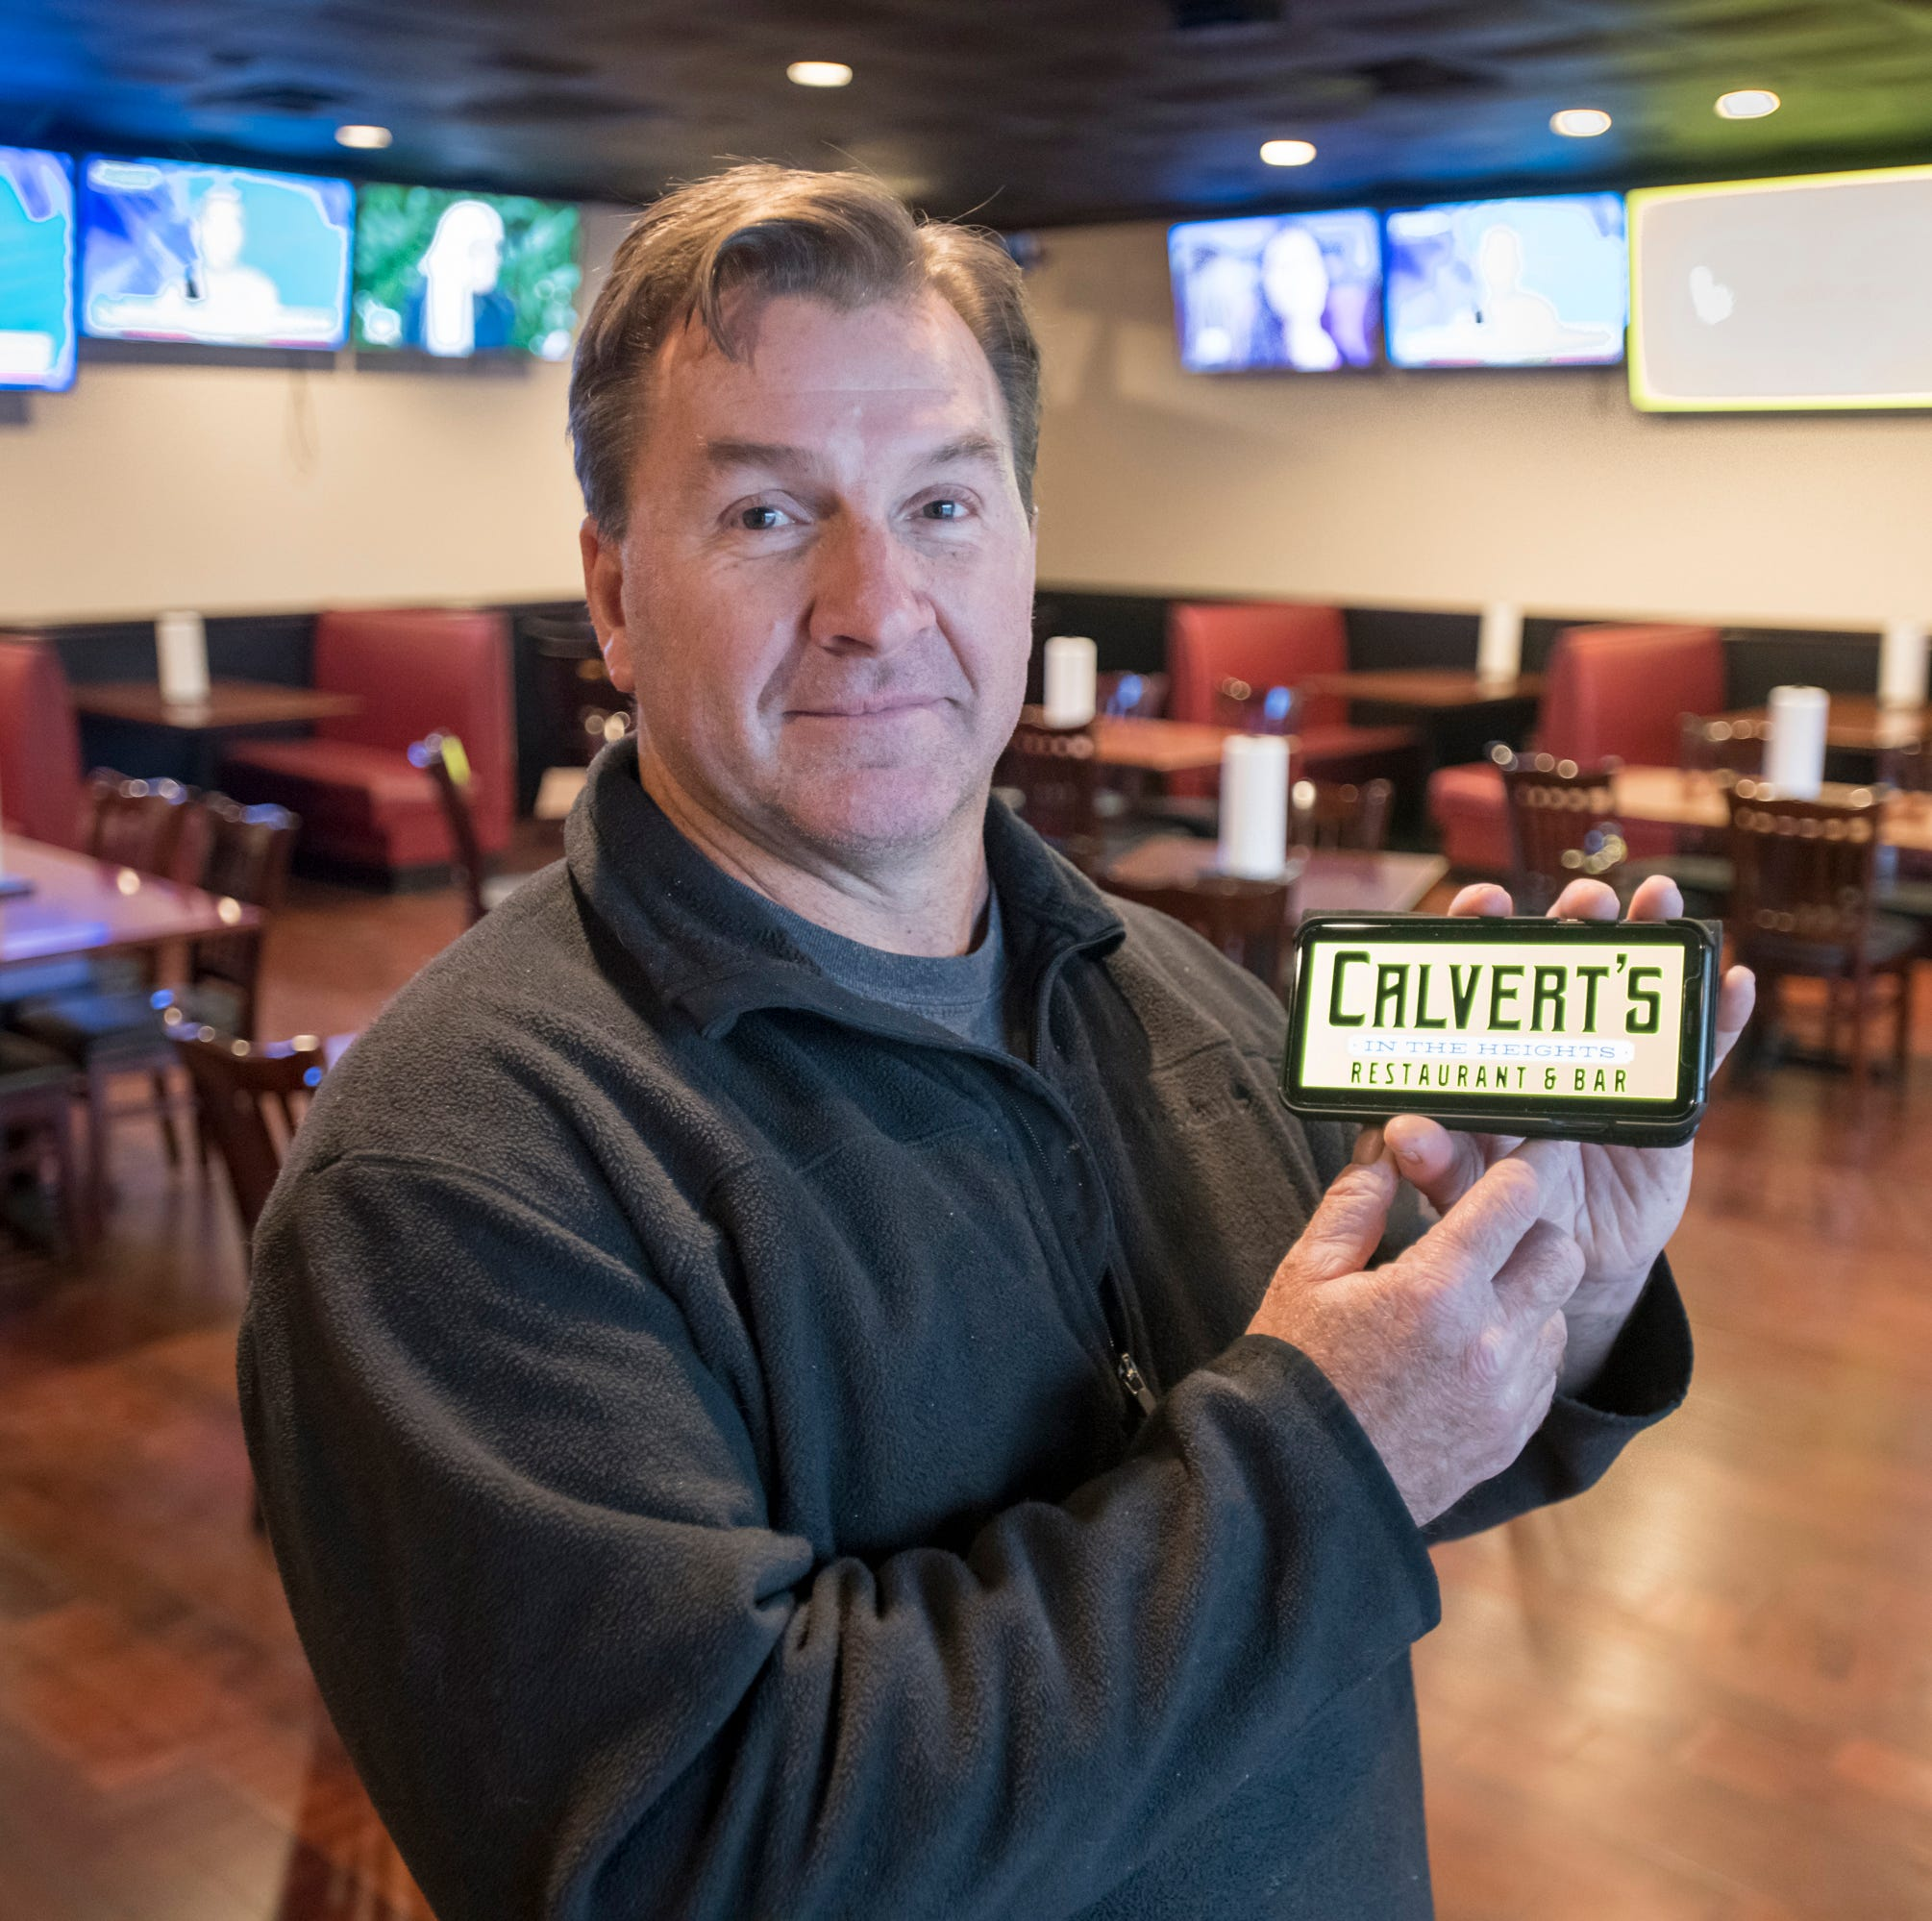 'Calvert's In the Heights' English-themed restaurant and bar opening soon in Pensacola